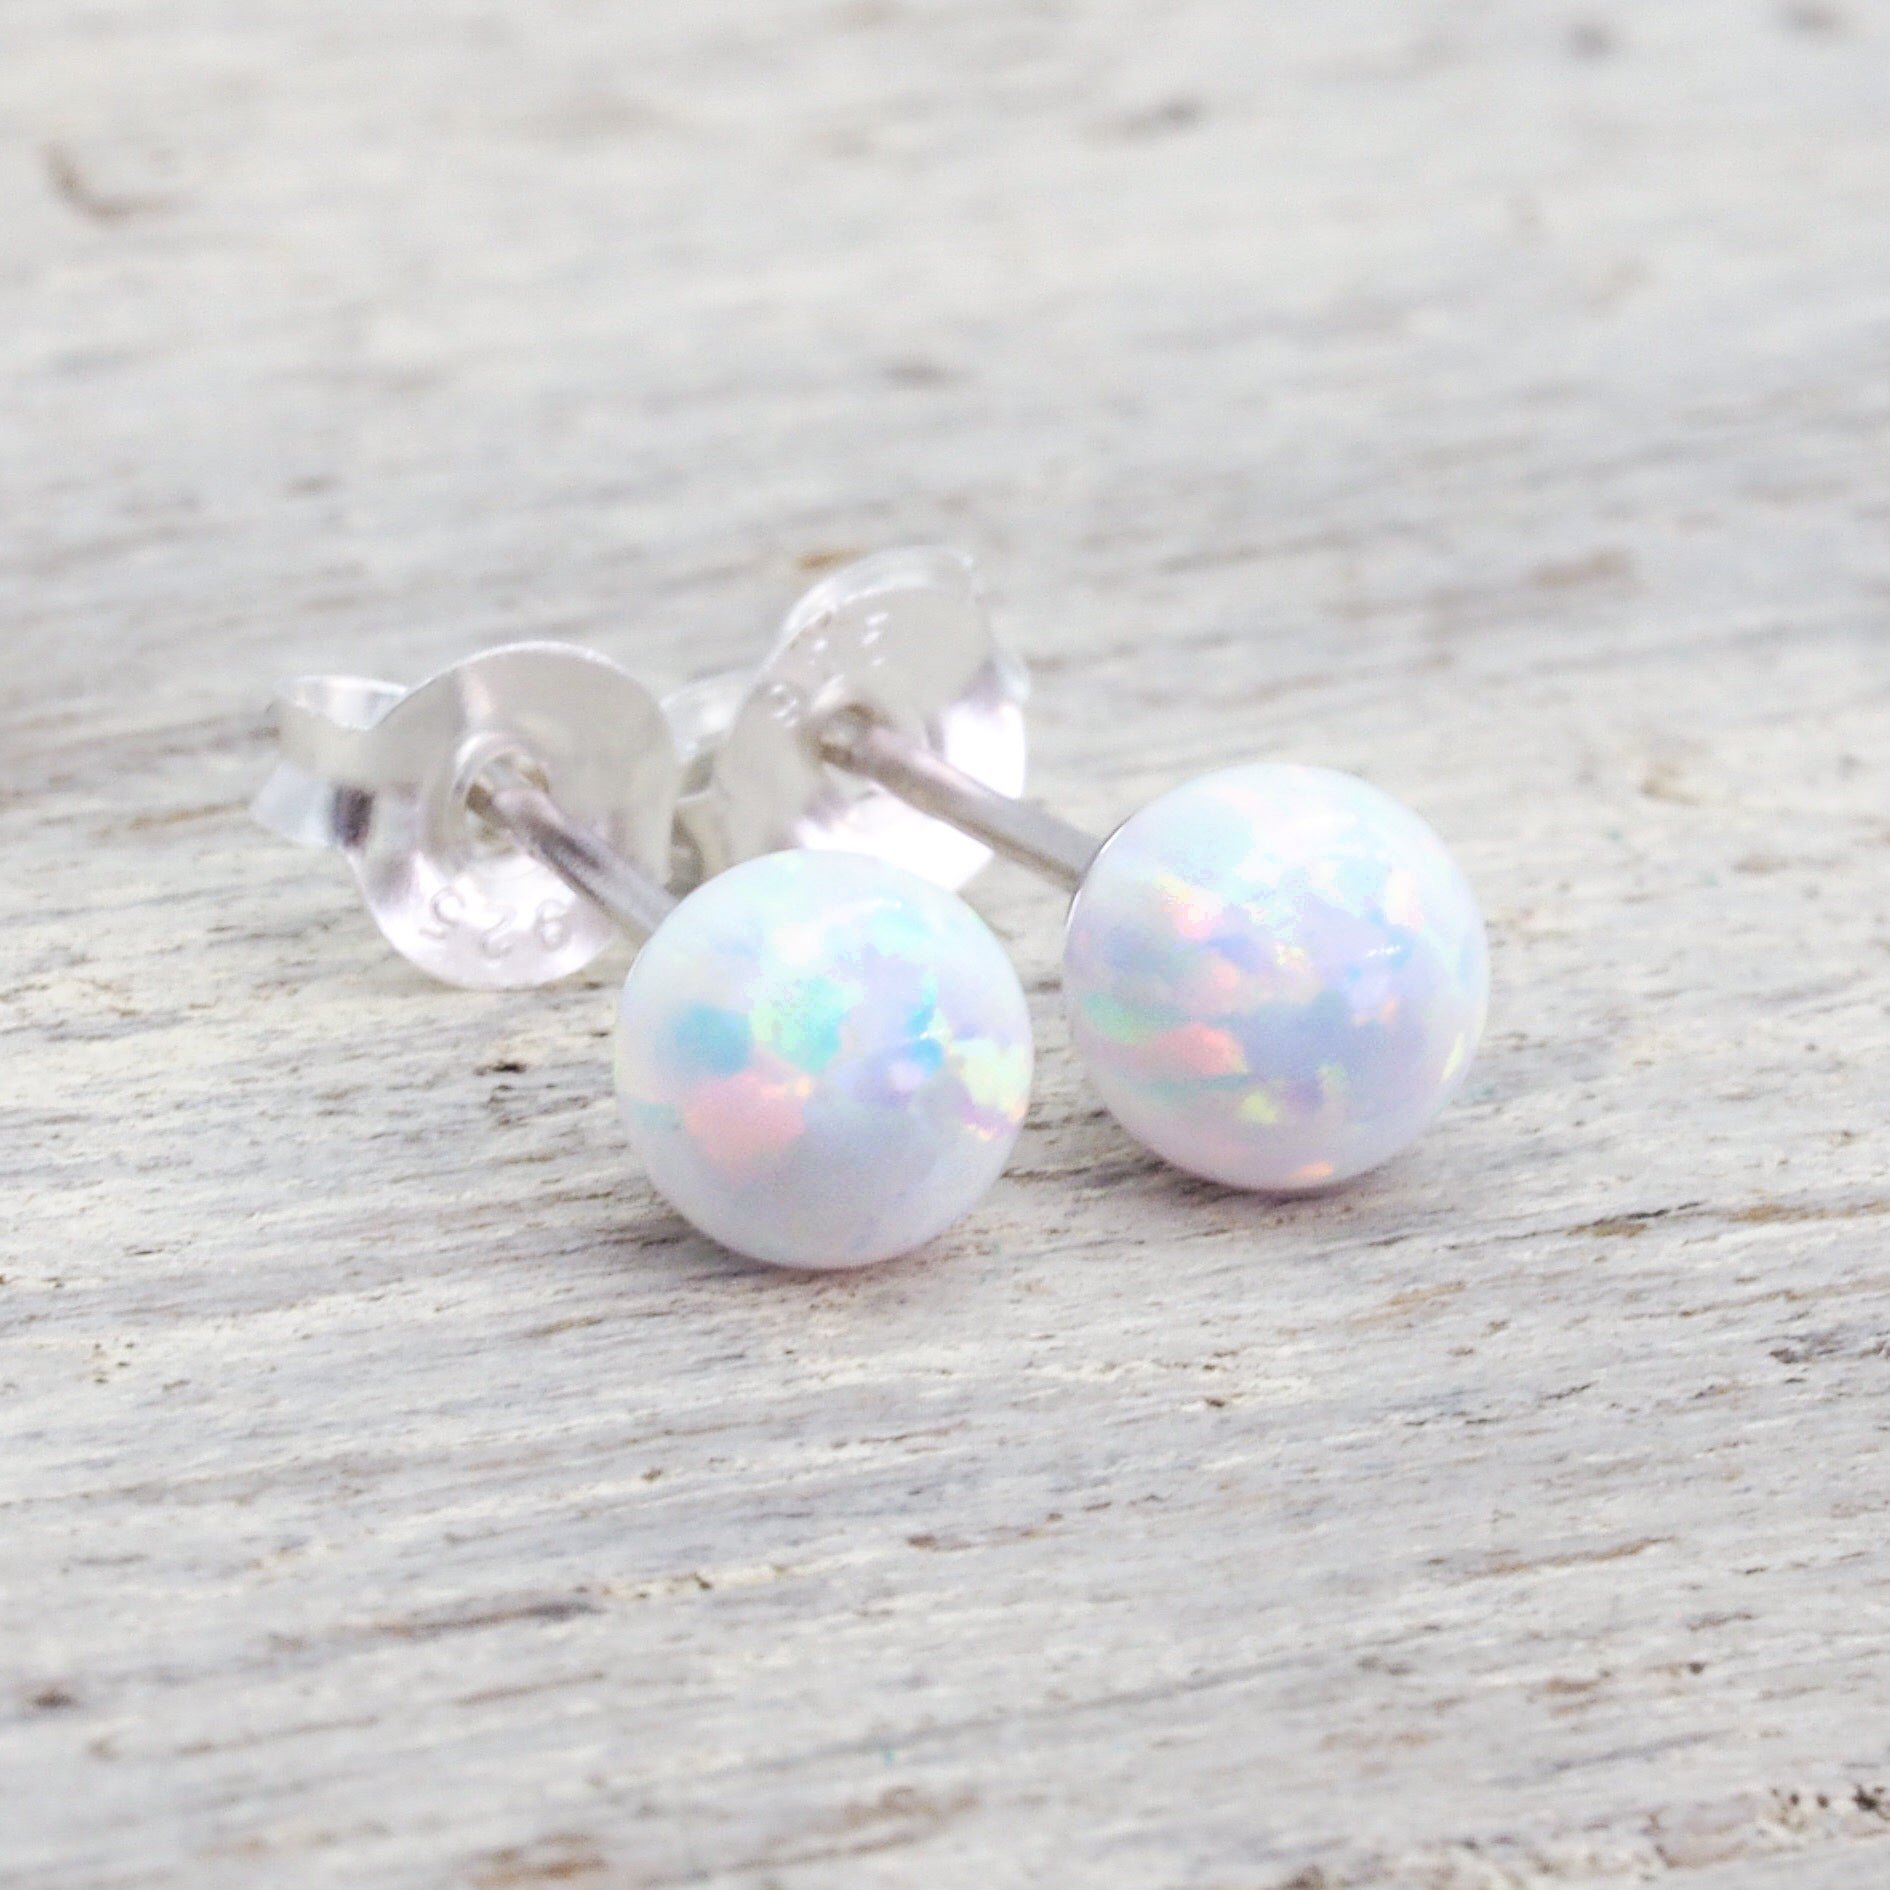 Mermaid Opal Earrings| bohemian gypsy festival jewellery| indie and harper